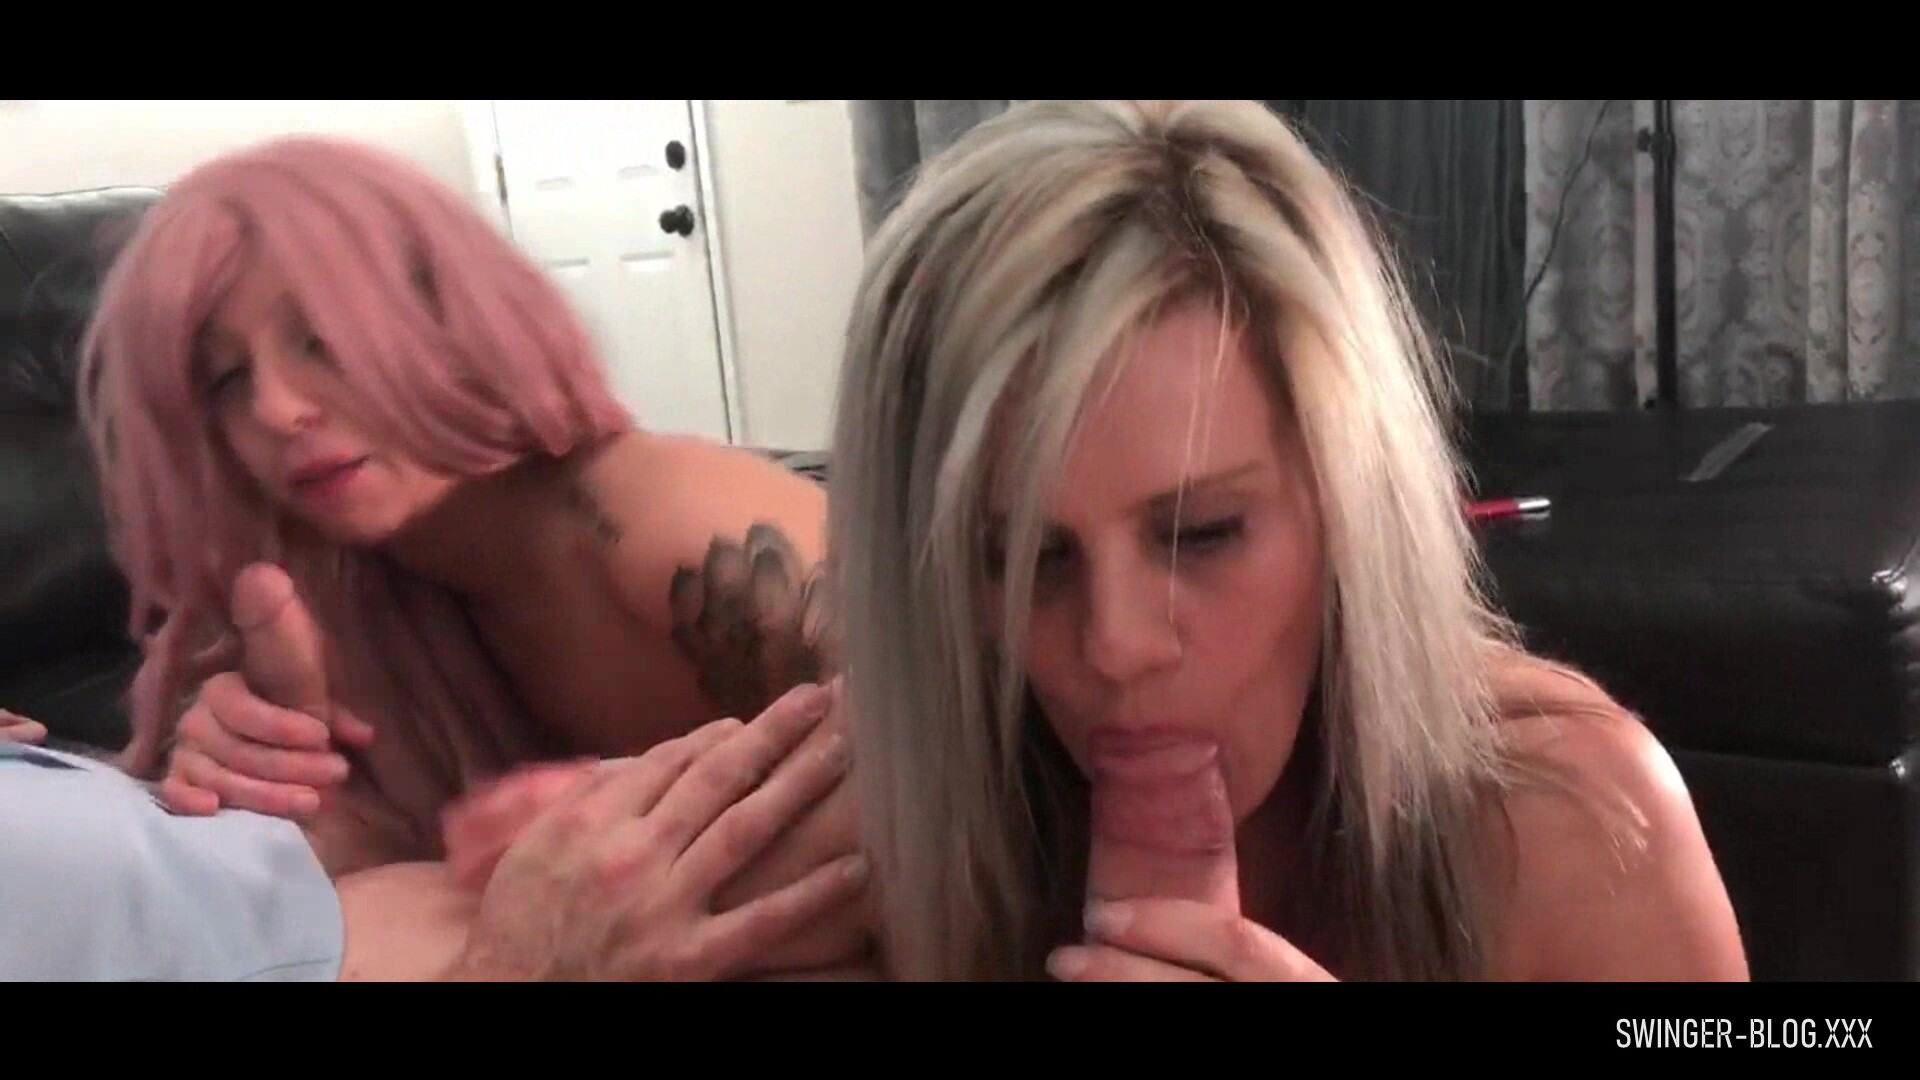 Hot Blonde Swinger Housewives Blowing Two Fat Cocks